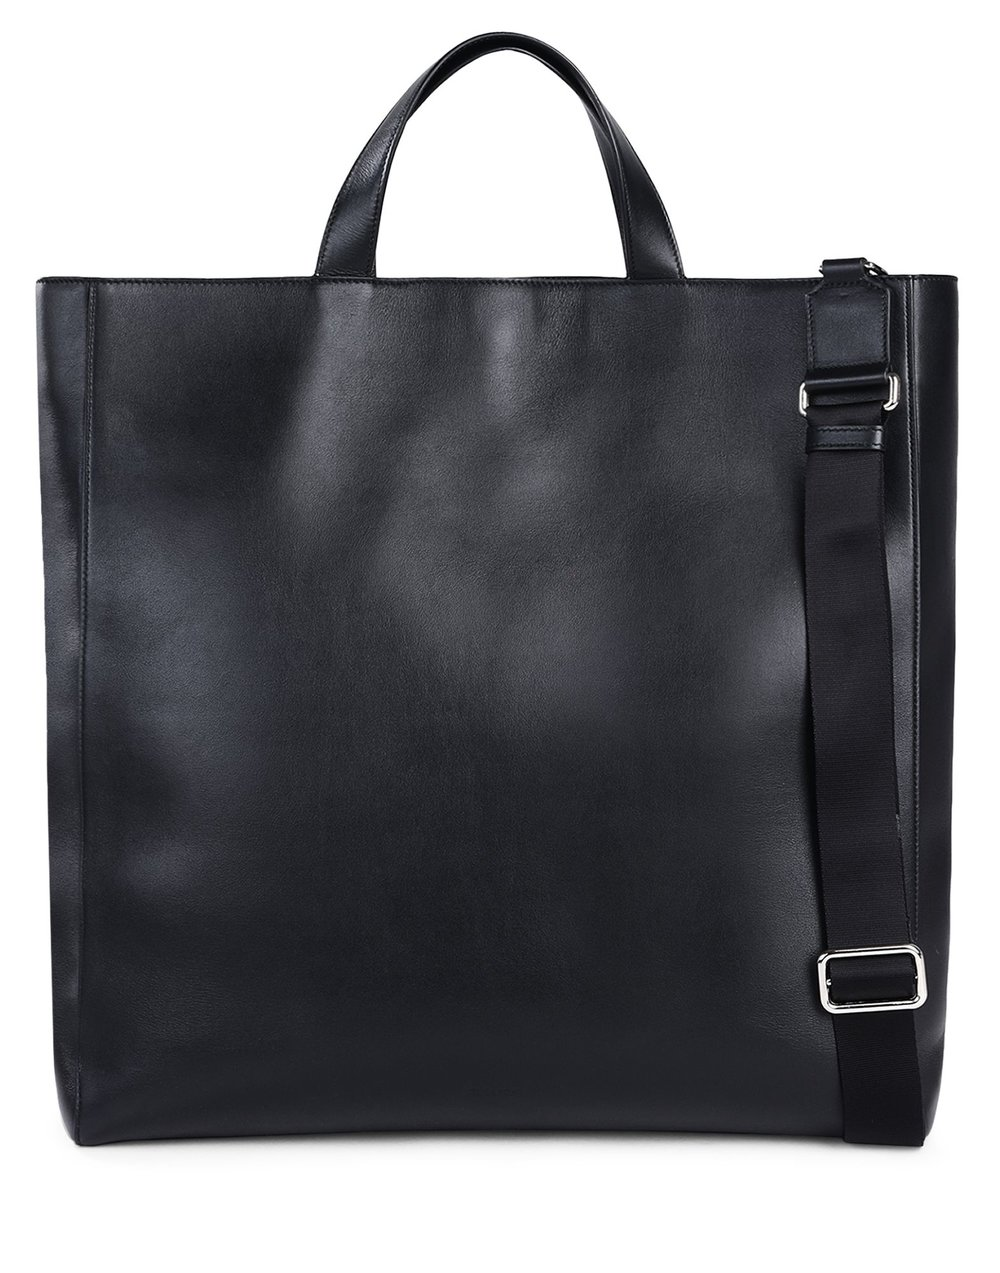 Jil Sander tote bag - £1,280 - An essential to get that NYC street style look